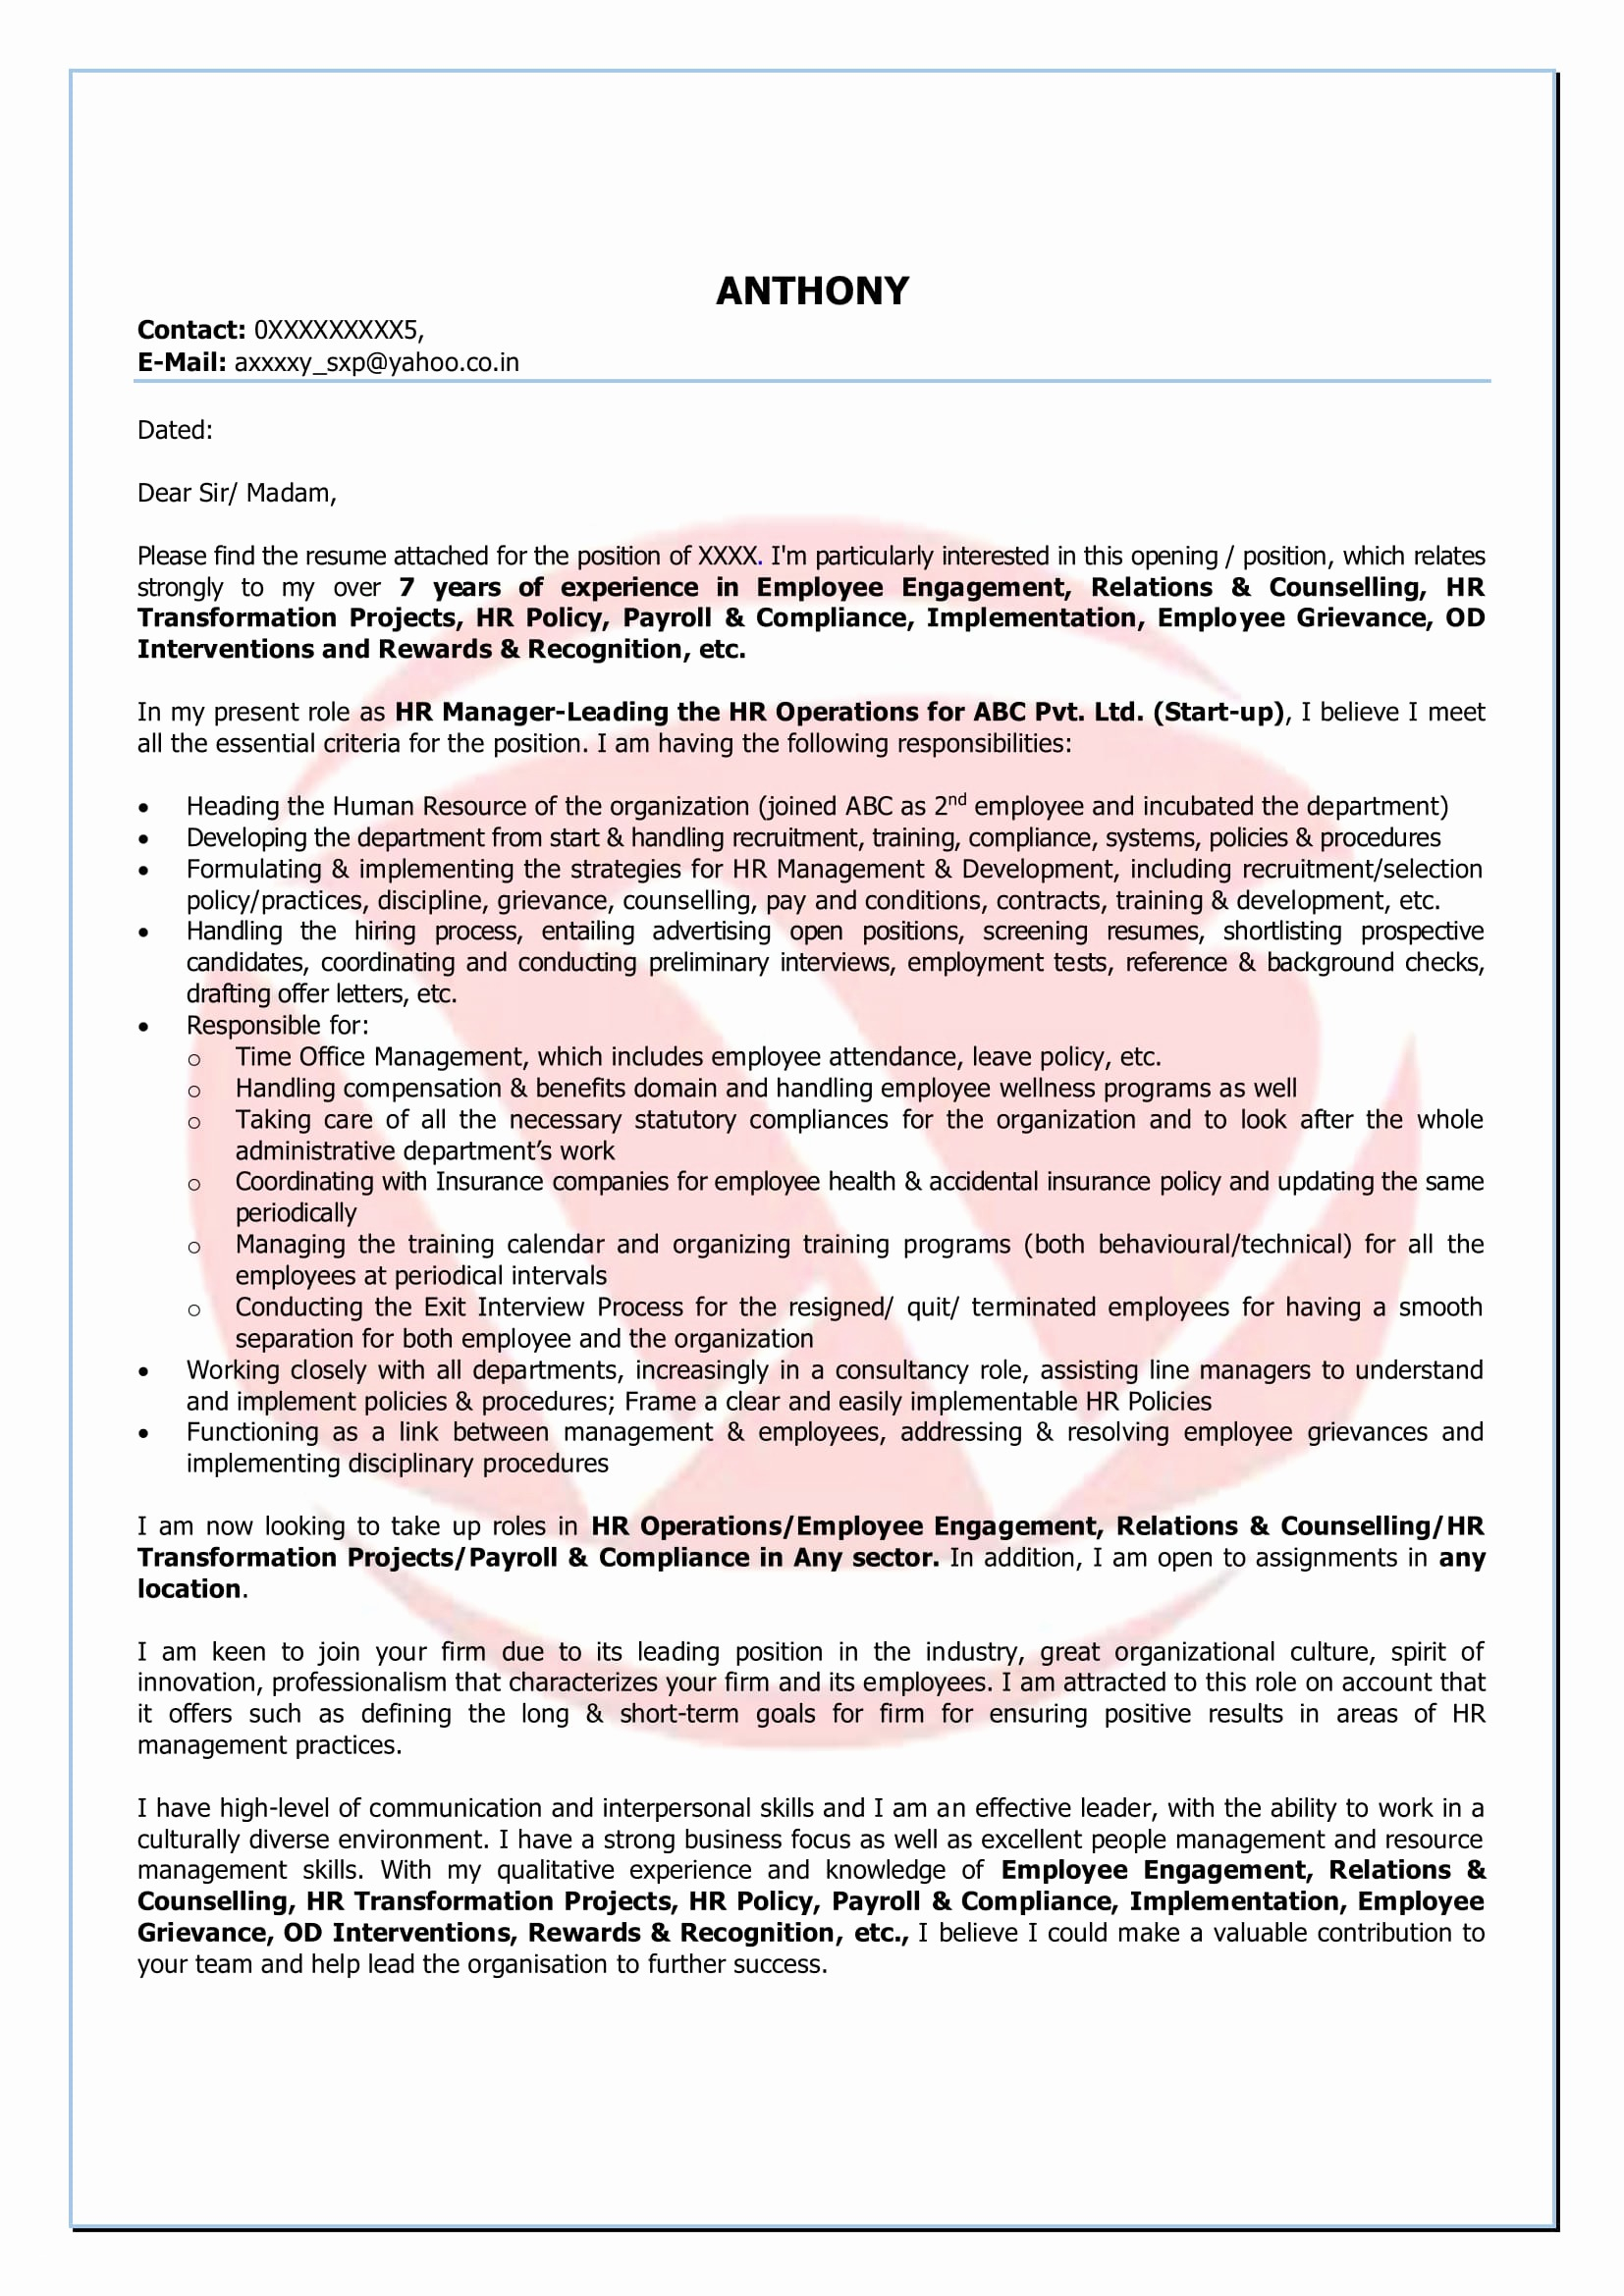 Due Diligence Letter Template - Free Letter Templates Beautiful Hr Due Diligence Checklist